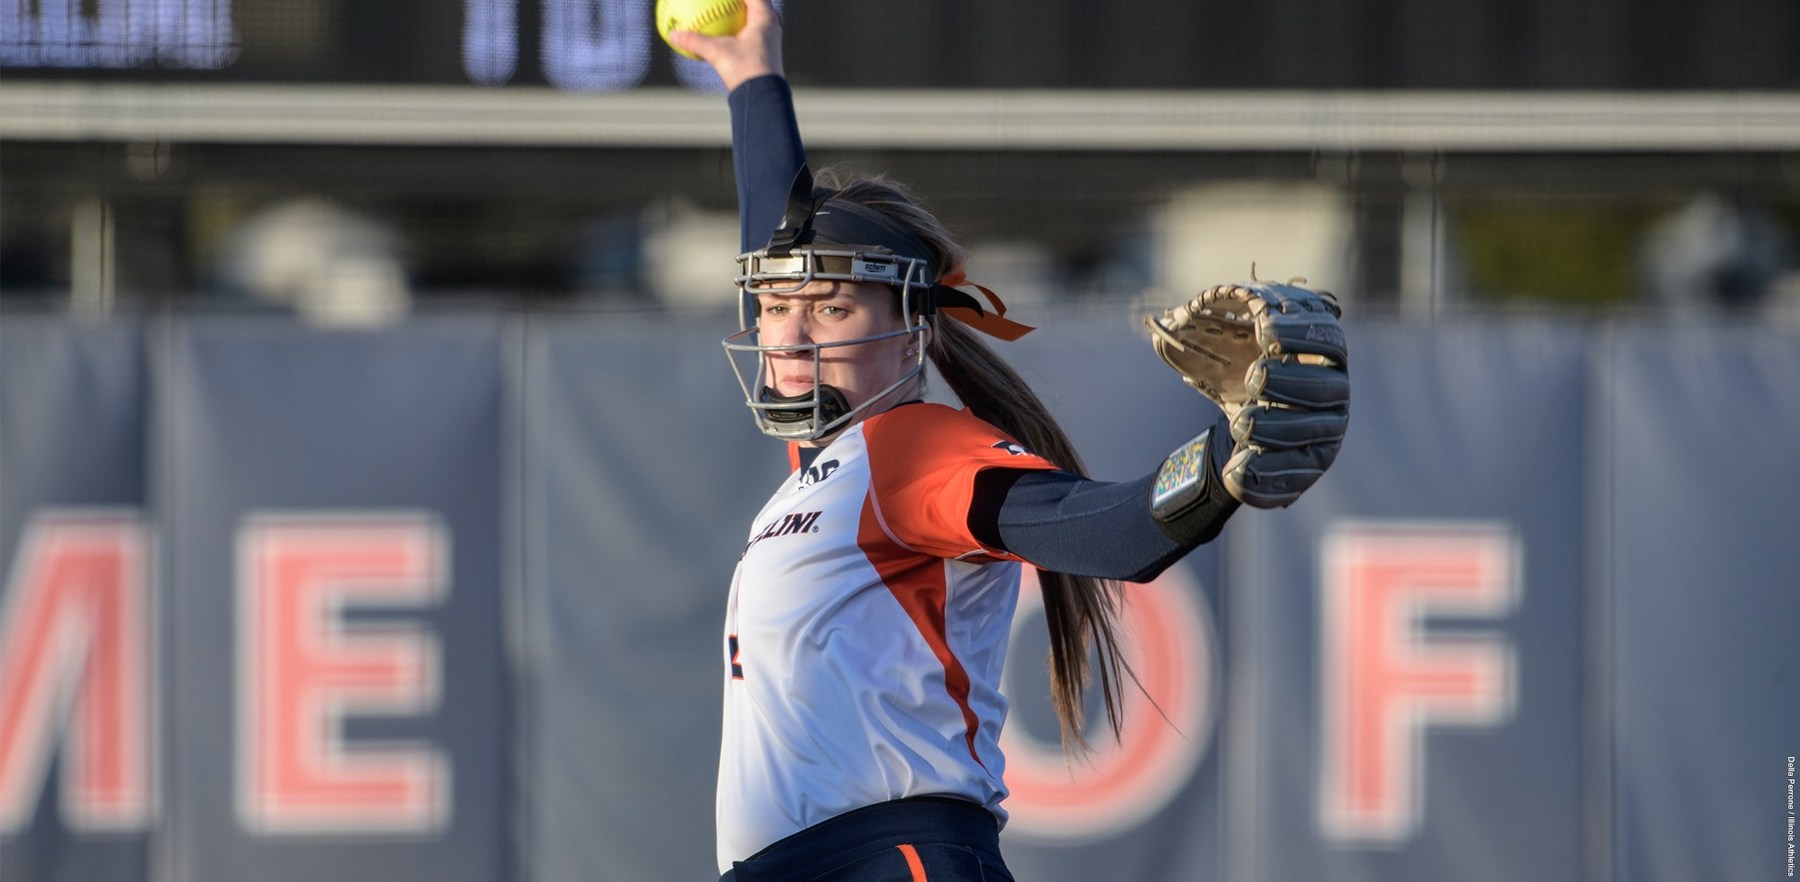 an Illini pitcher in her wind-up